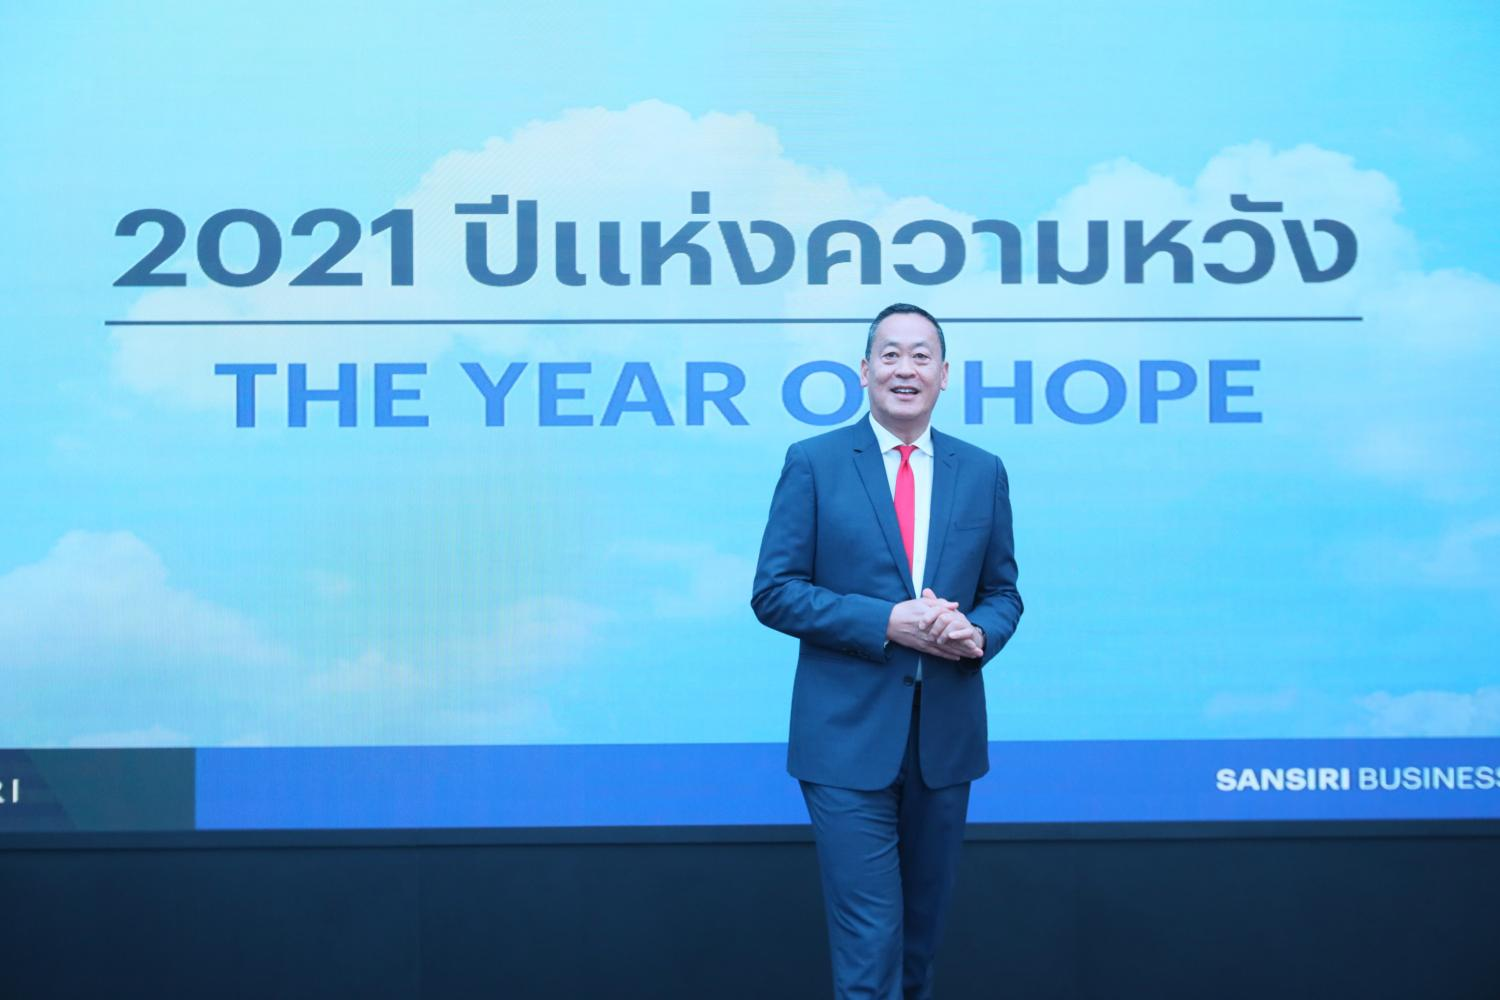 Sansiri aims to launch 24 new projects this year